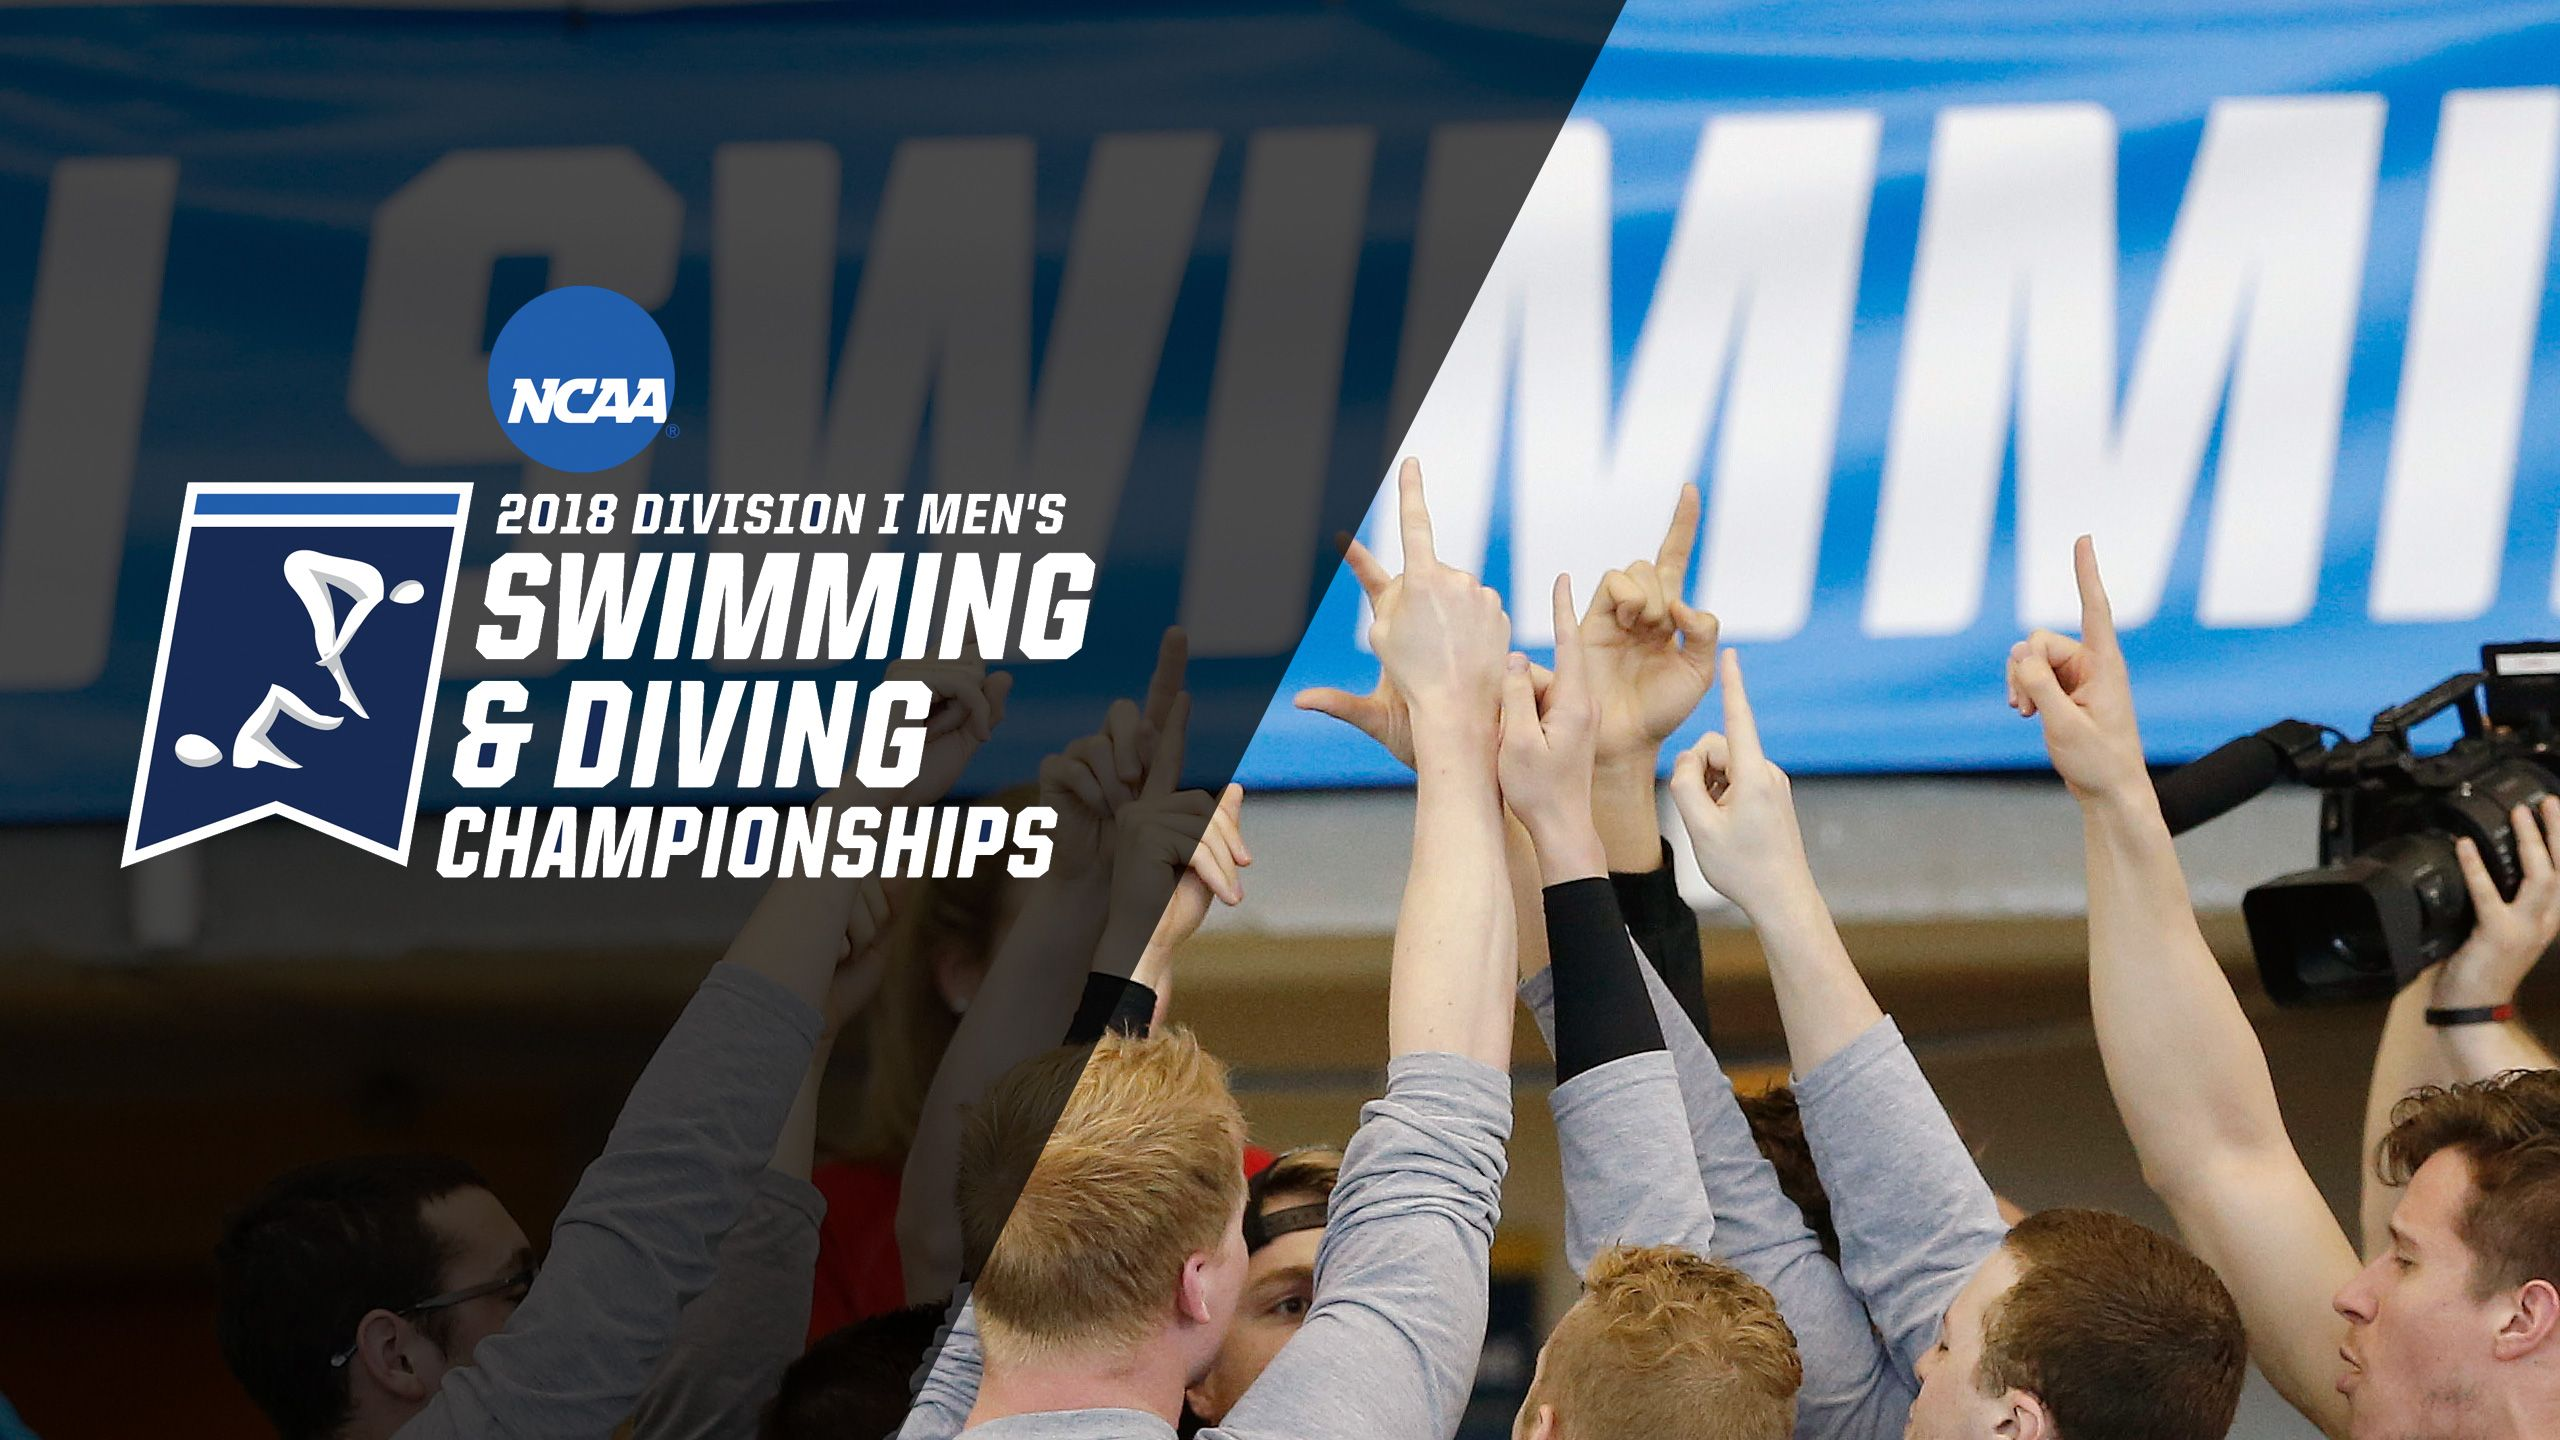 2018 NCAA Men's Swimming & Diving Championships - Trophy Presentation